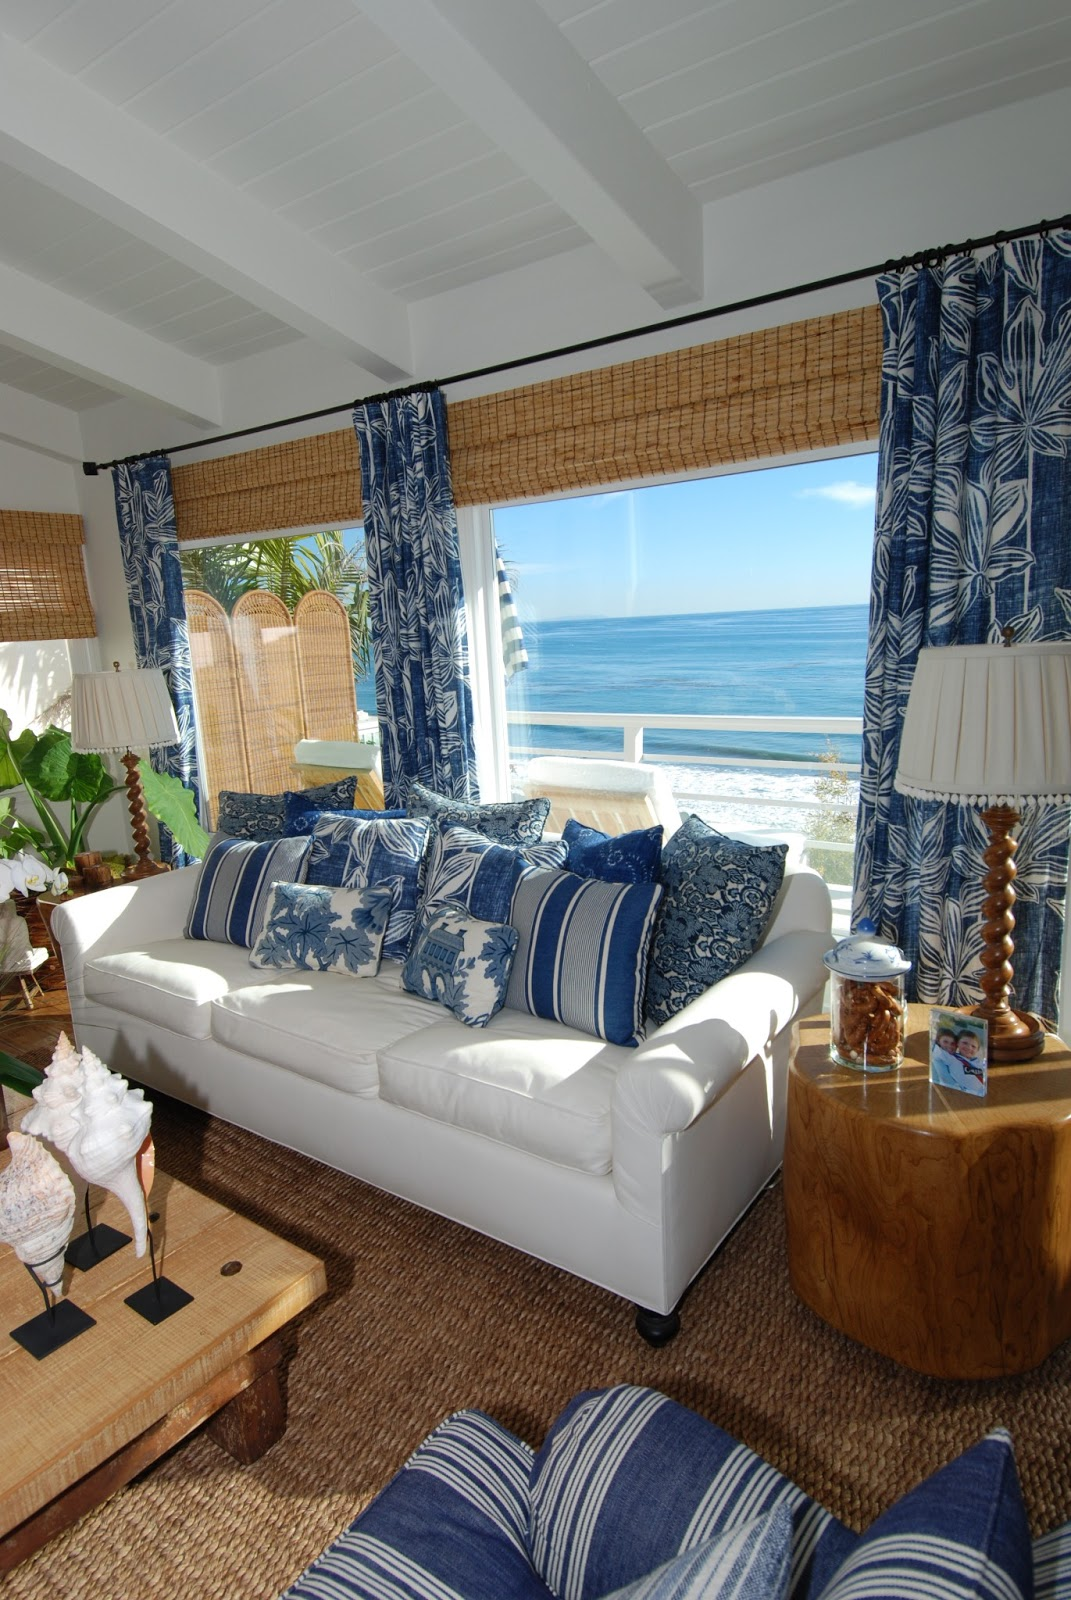 Everything Coastal Sea Blue and White  Always a Classic Beach House Look